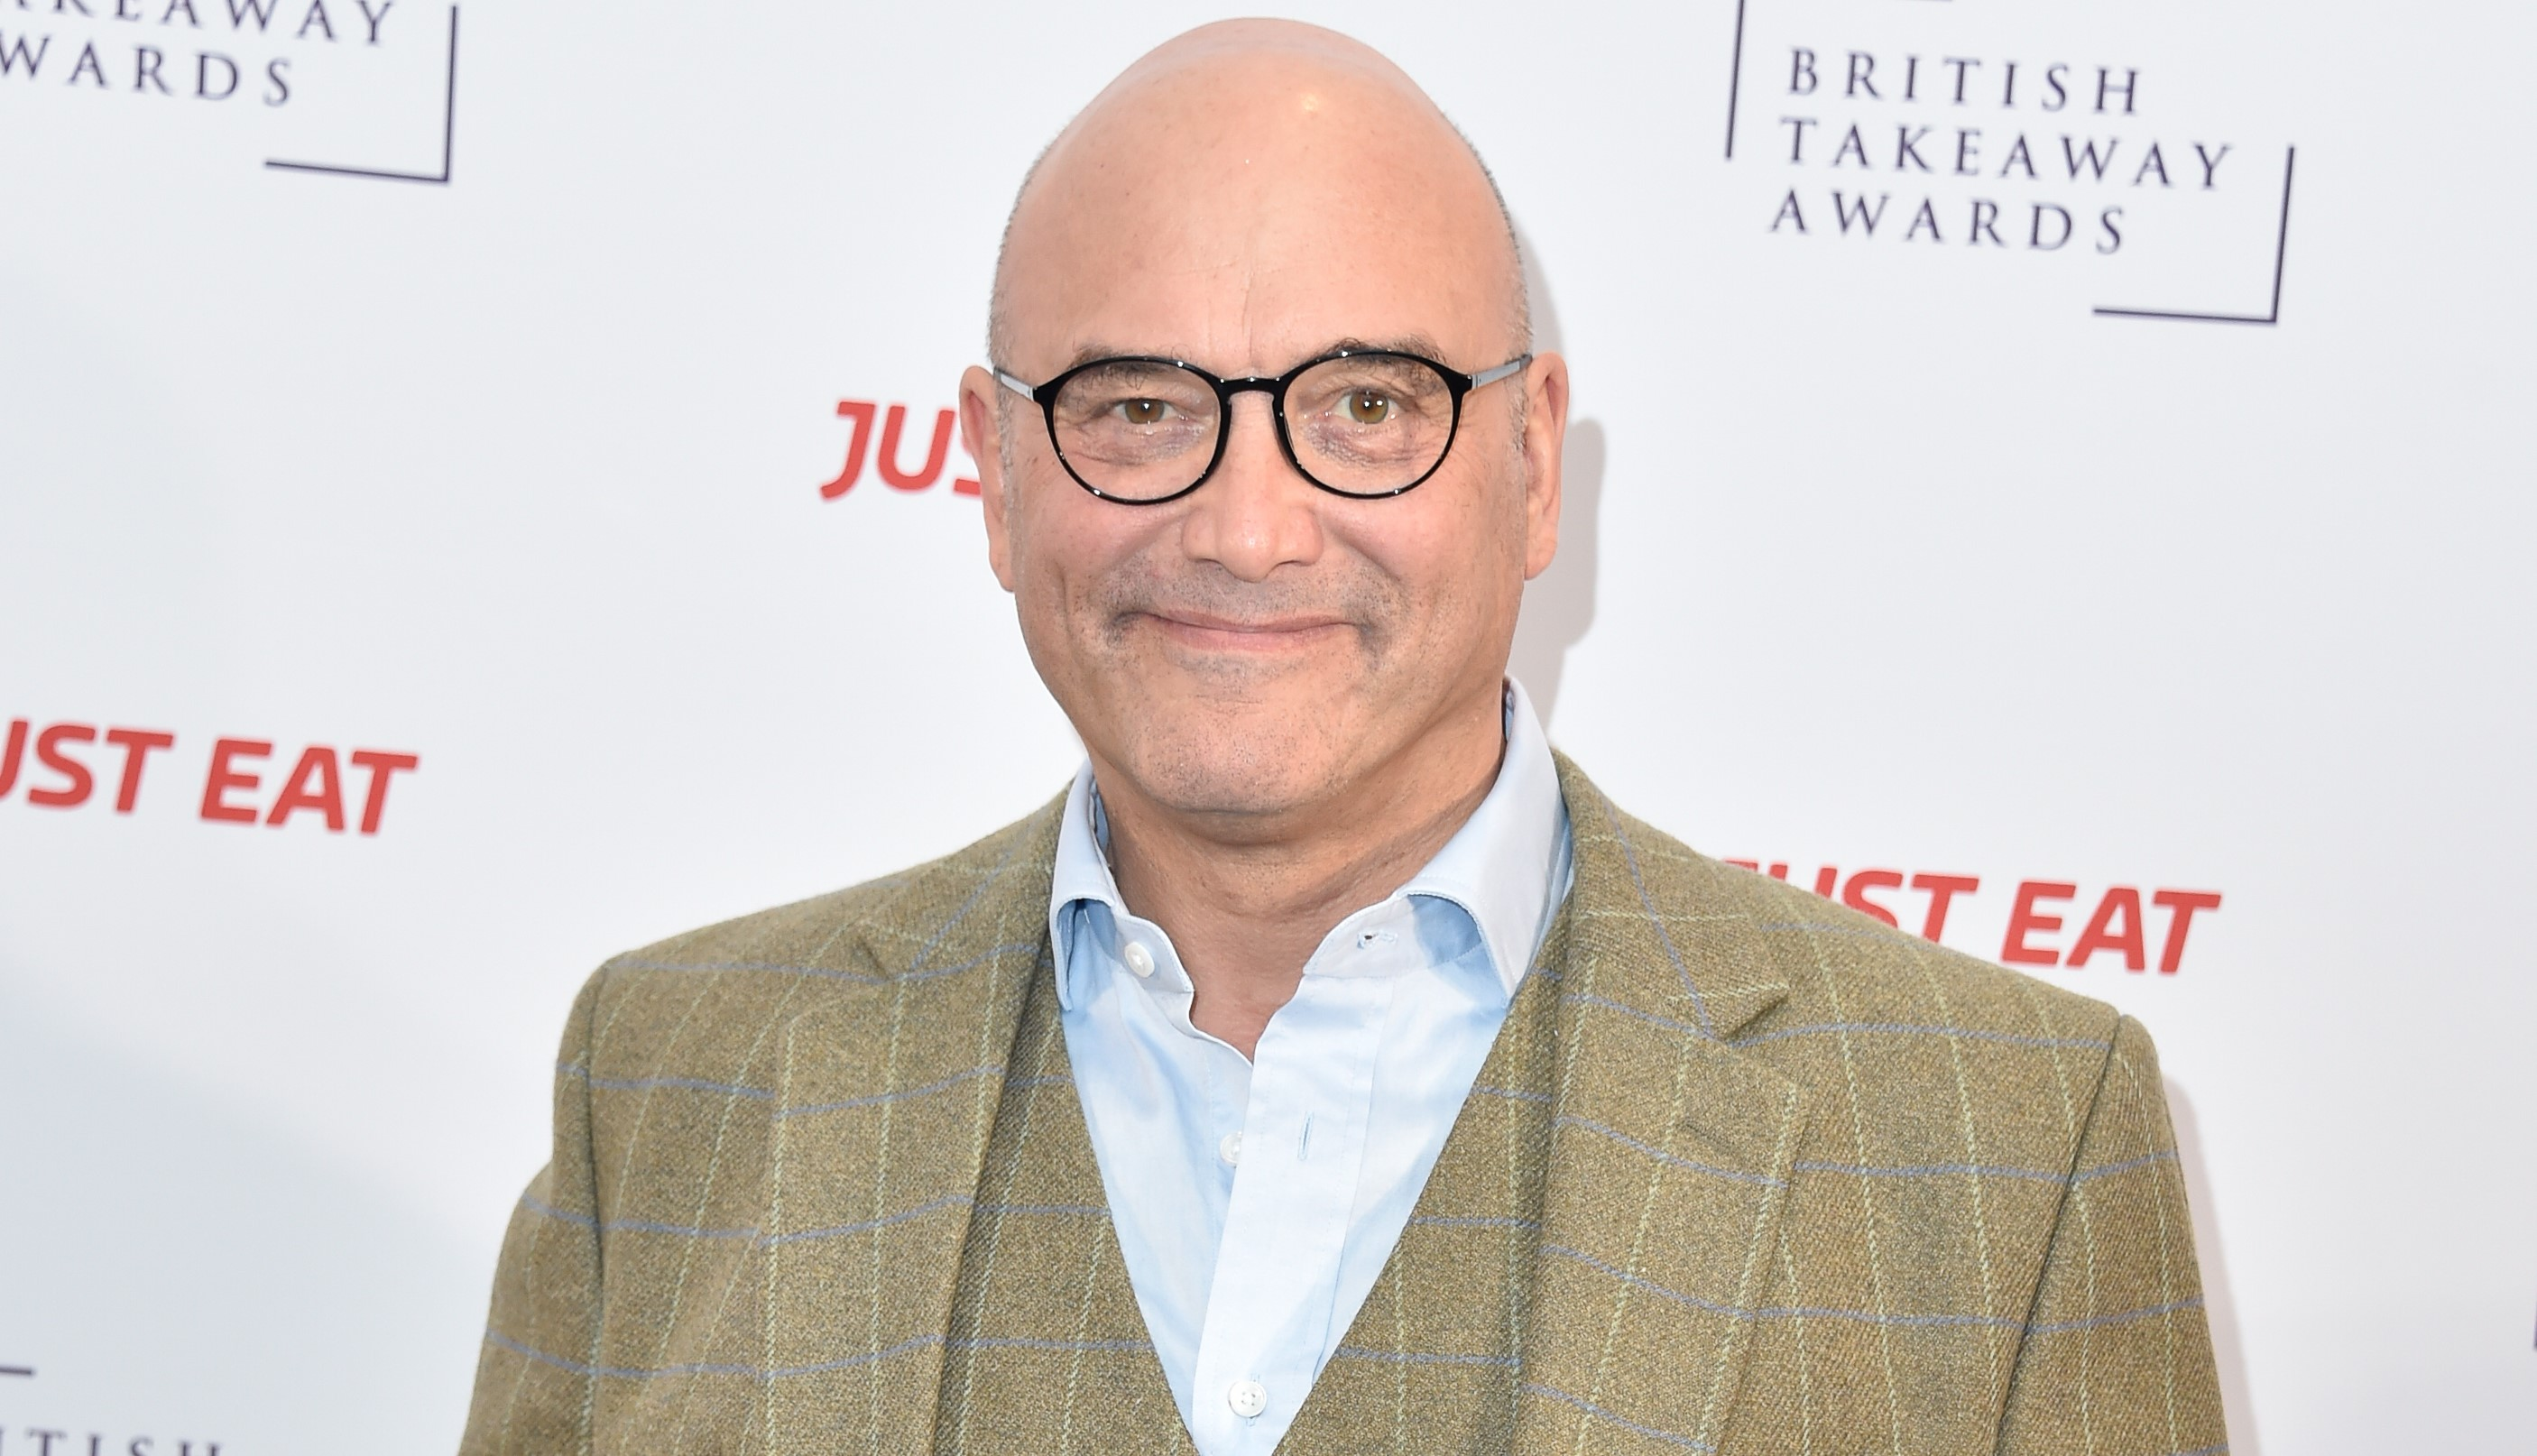 New dad Gregg Wallace says he's finding sleepless nights 'difficult'